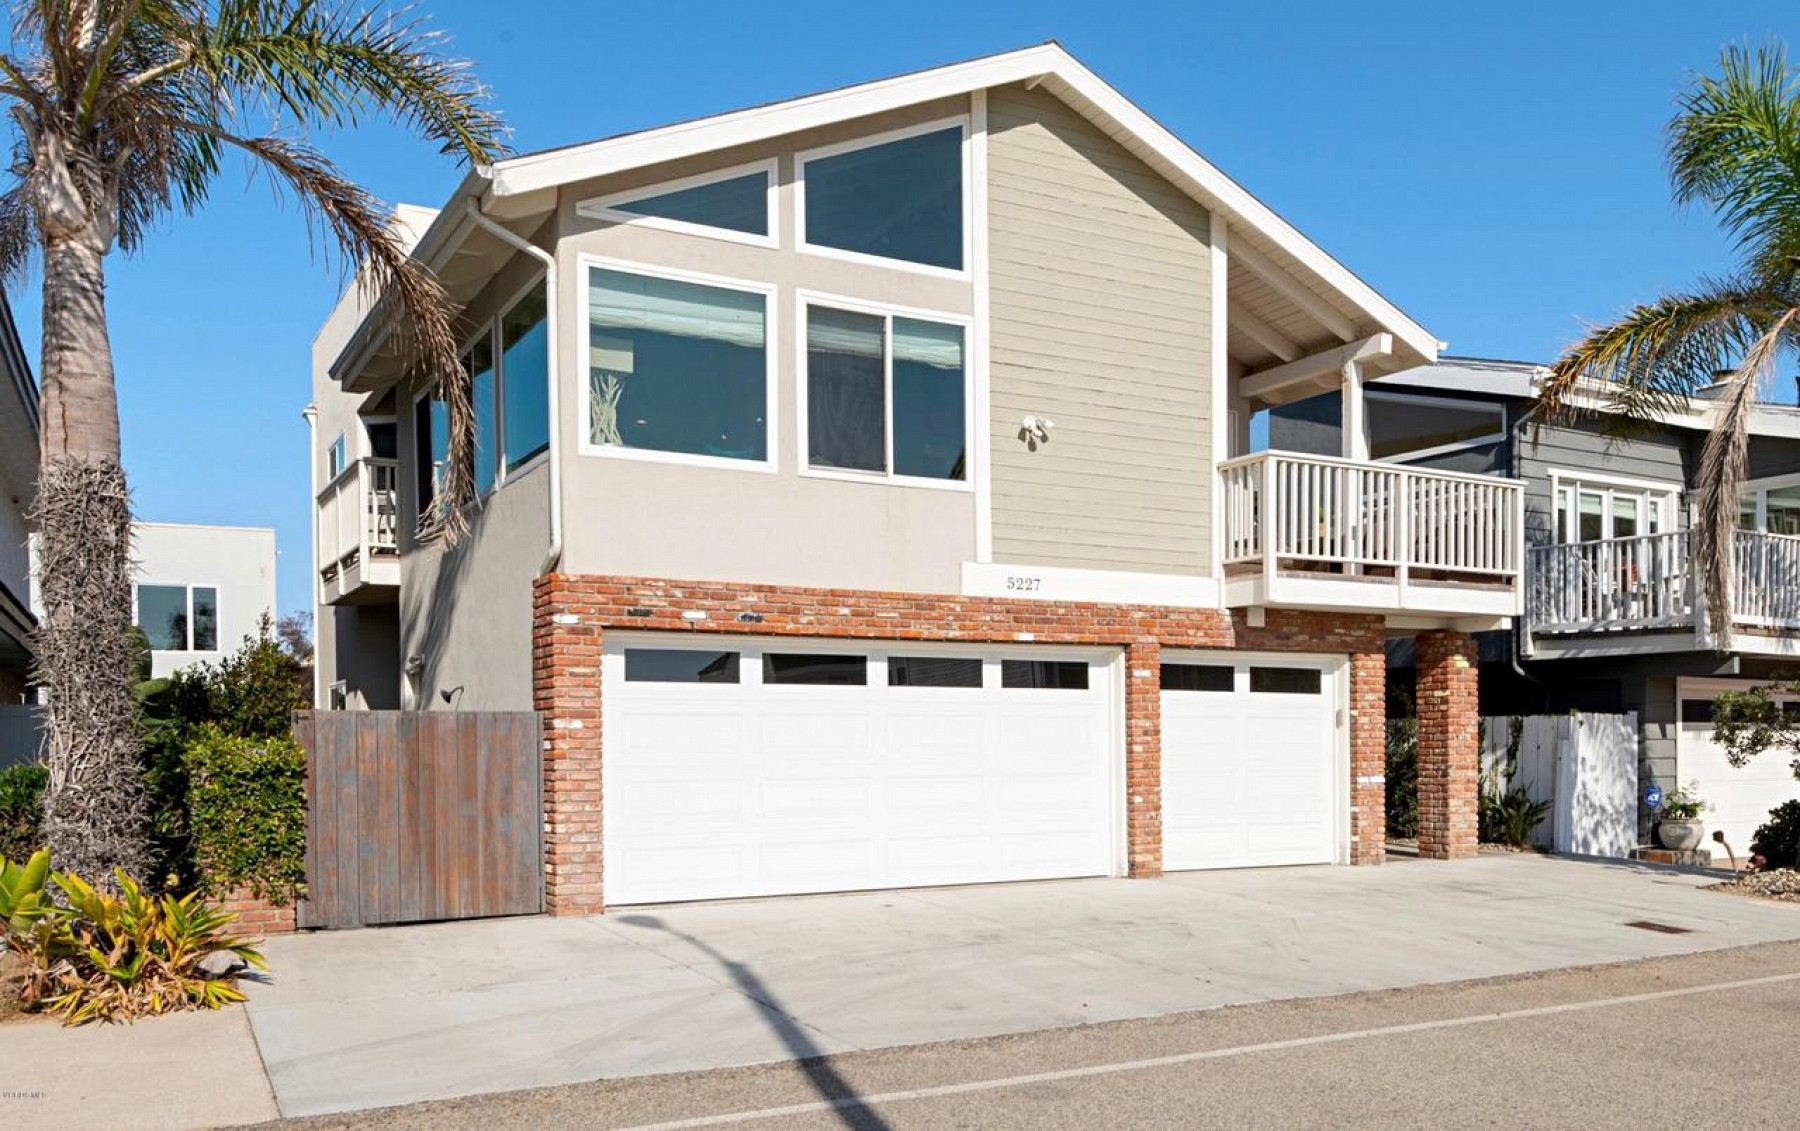 5227 Sealane Way, Mandalay Shores, CA 93035